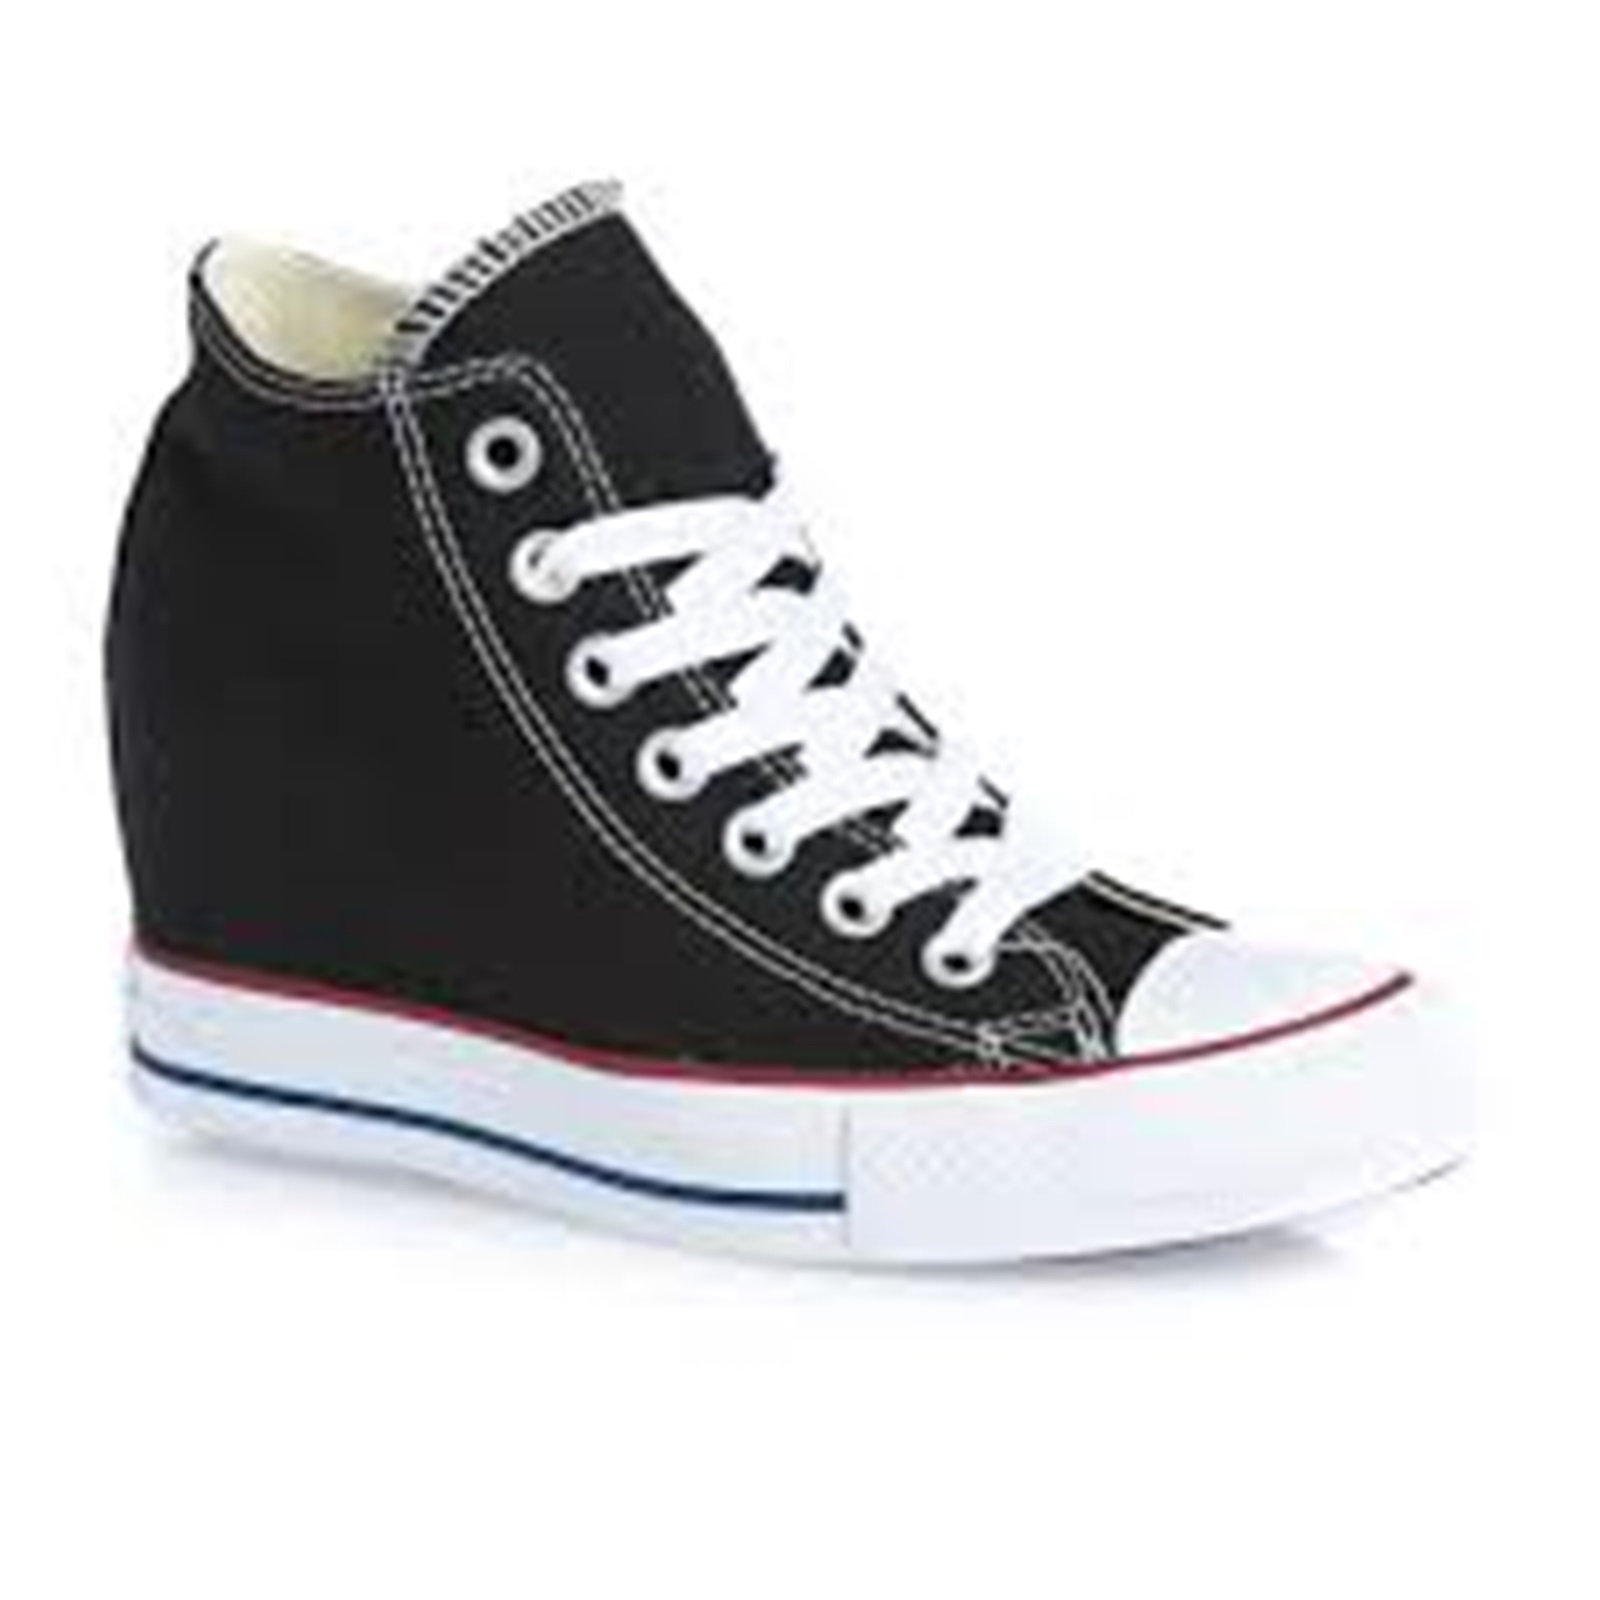 3c38528cf6 Karol Siqueira  Fashion sharps  All star de salto  (Chuck Taylor Lux ...